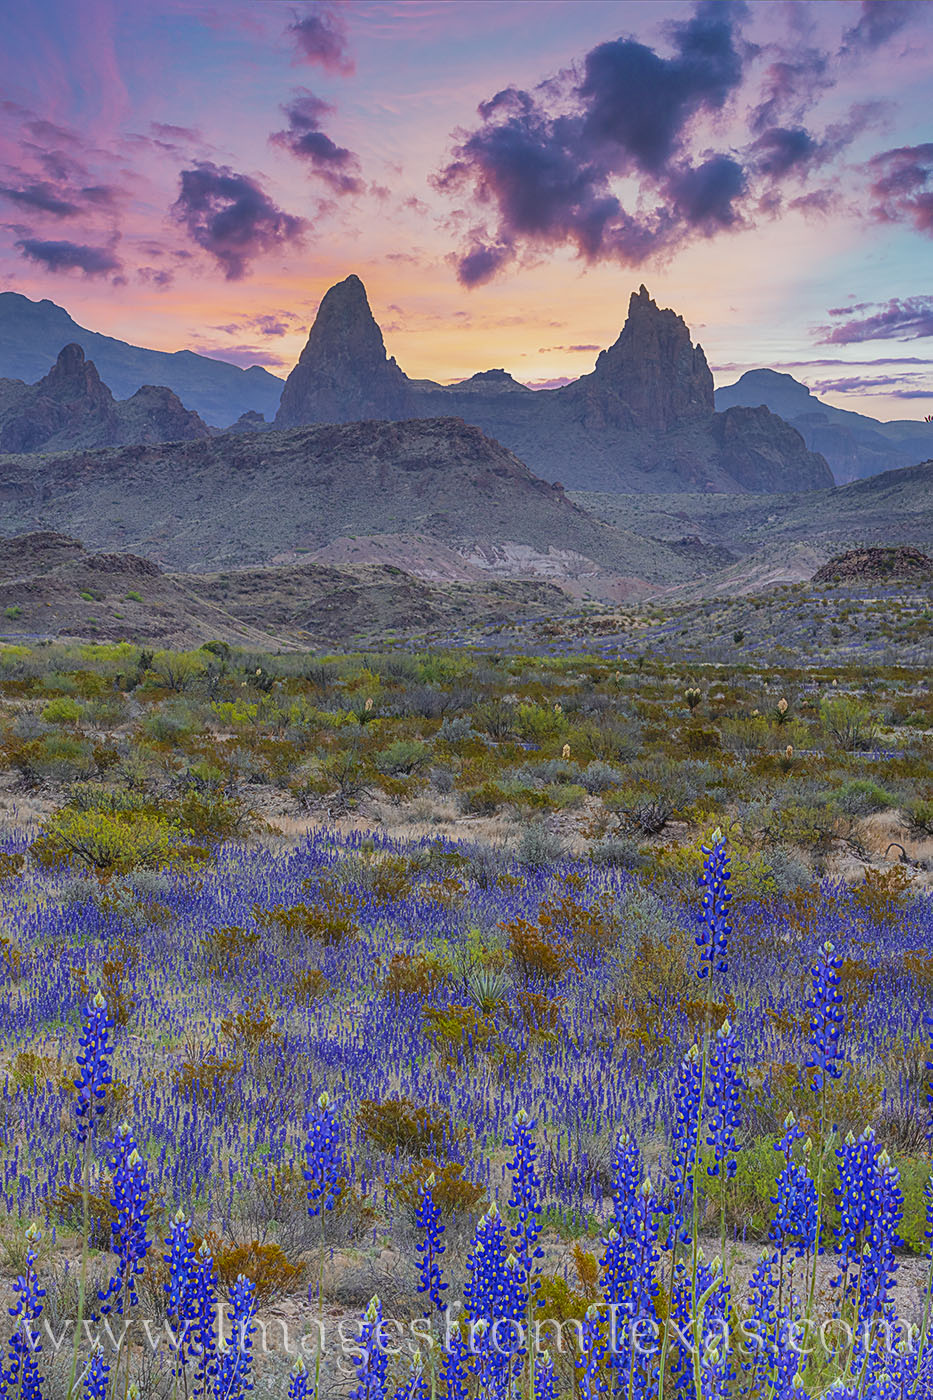 bluebonnets, wildflowers, big bend national park, mule ears, morning, sunrise, chisos mountains, spring, blue, orange, photo